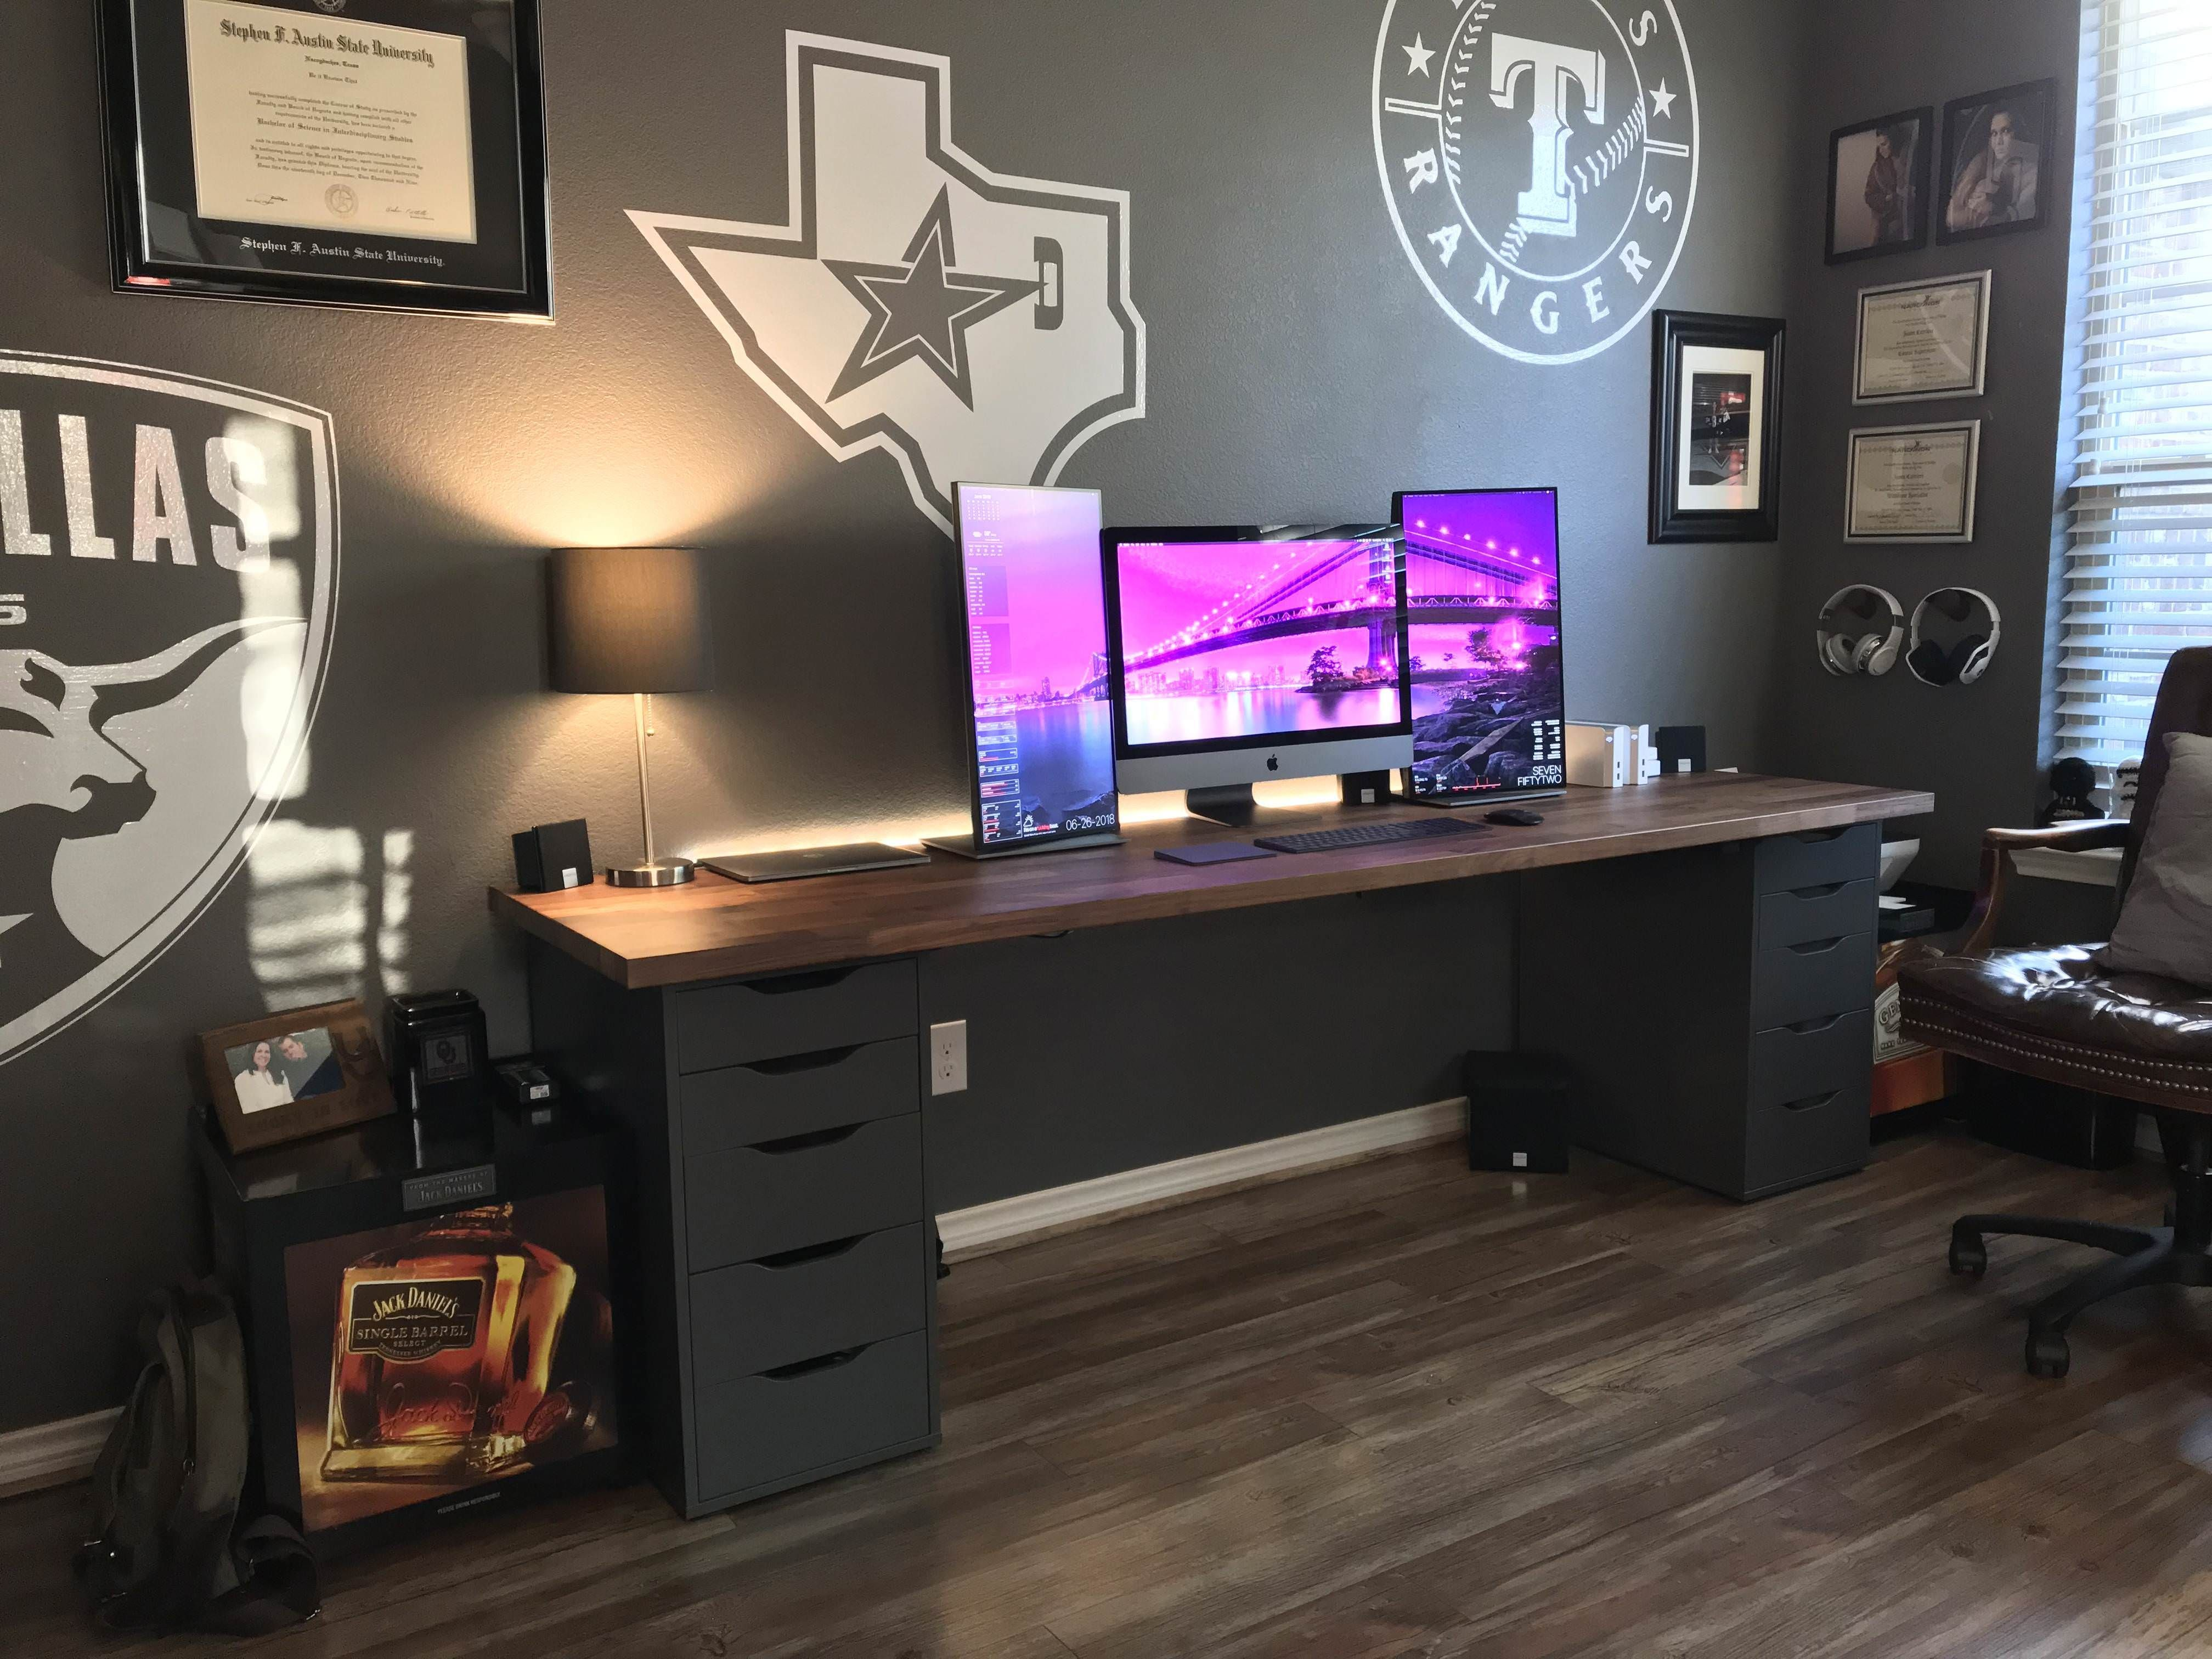 Video Game Room Ideas Find Your Dream Room Here Creative Home Design Home Office Setup Ikea Office Desk Home Office Design